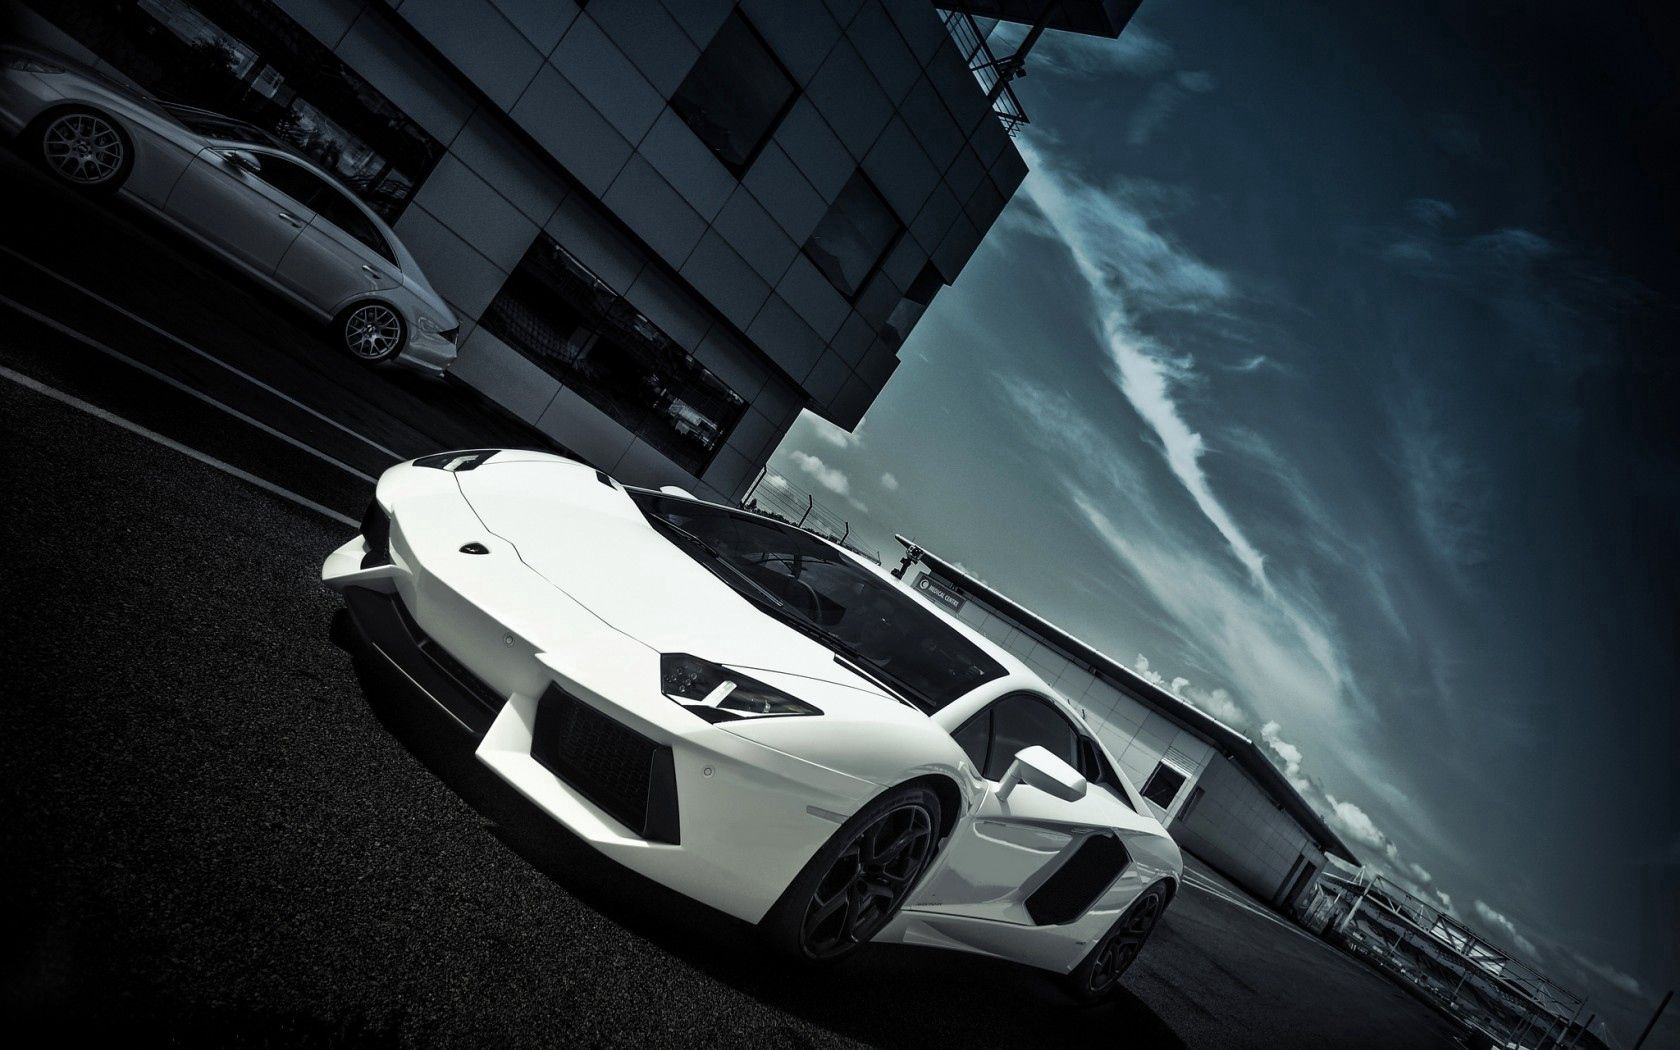 118115 Screensavers and Wallpapers Windows for phone. Download Windows, Sky, Clouds, Lamborghini, Cars, Building, Road, Markup, Side View, Aventador pictures for free